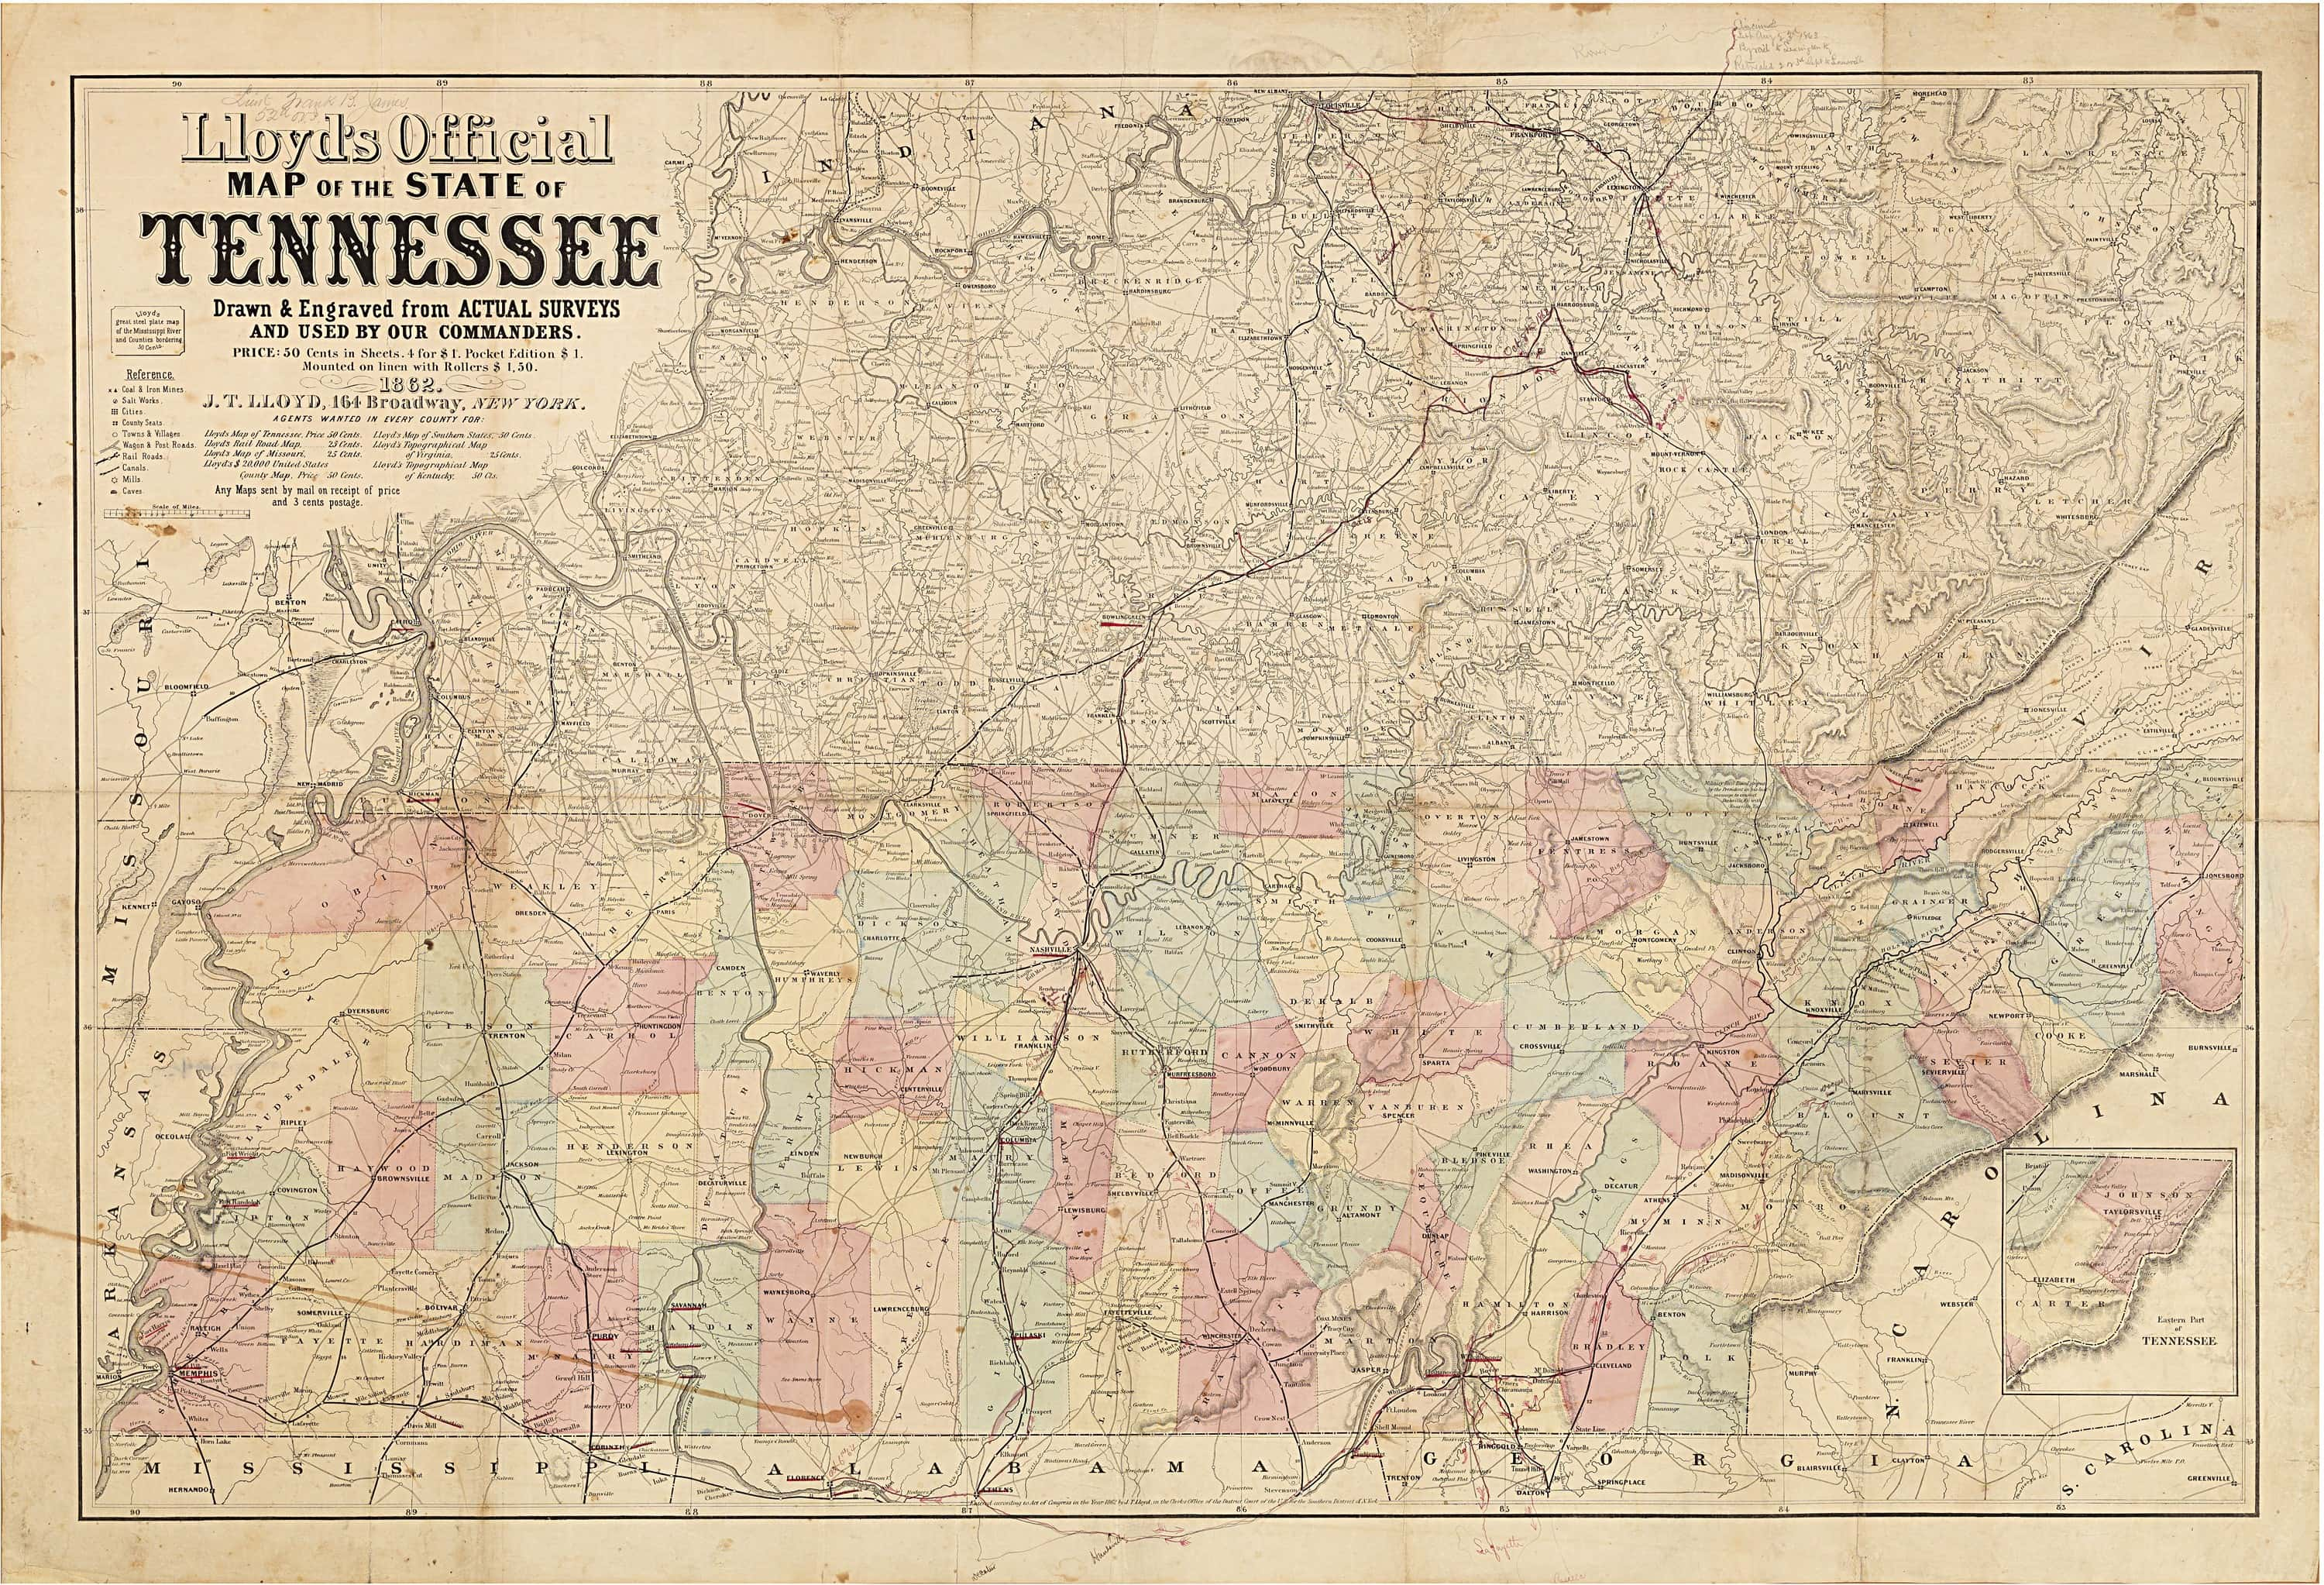 Important Civil Warera Maps Of Tennessee And Georgia With Unique - Tennessee waterways map